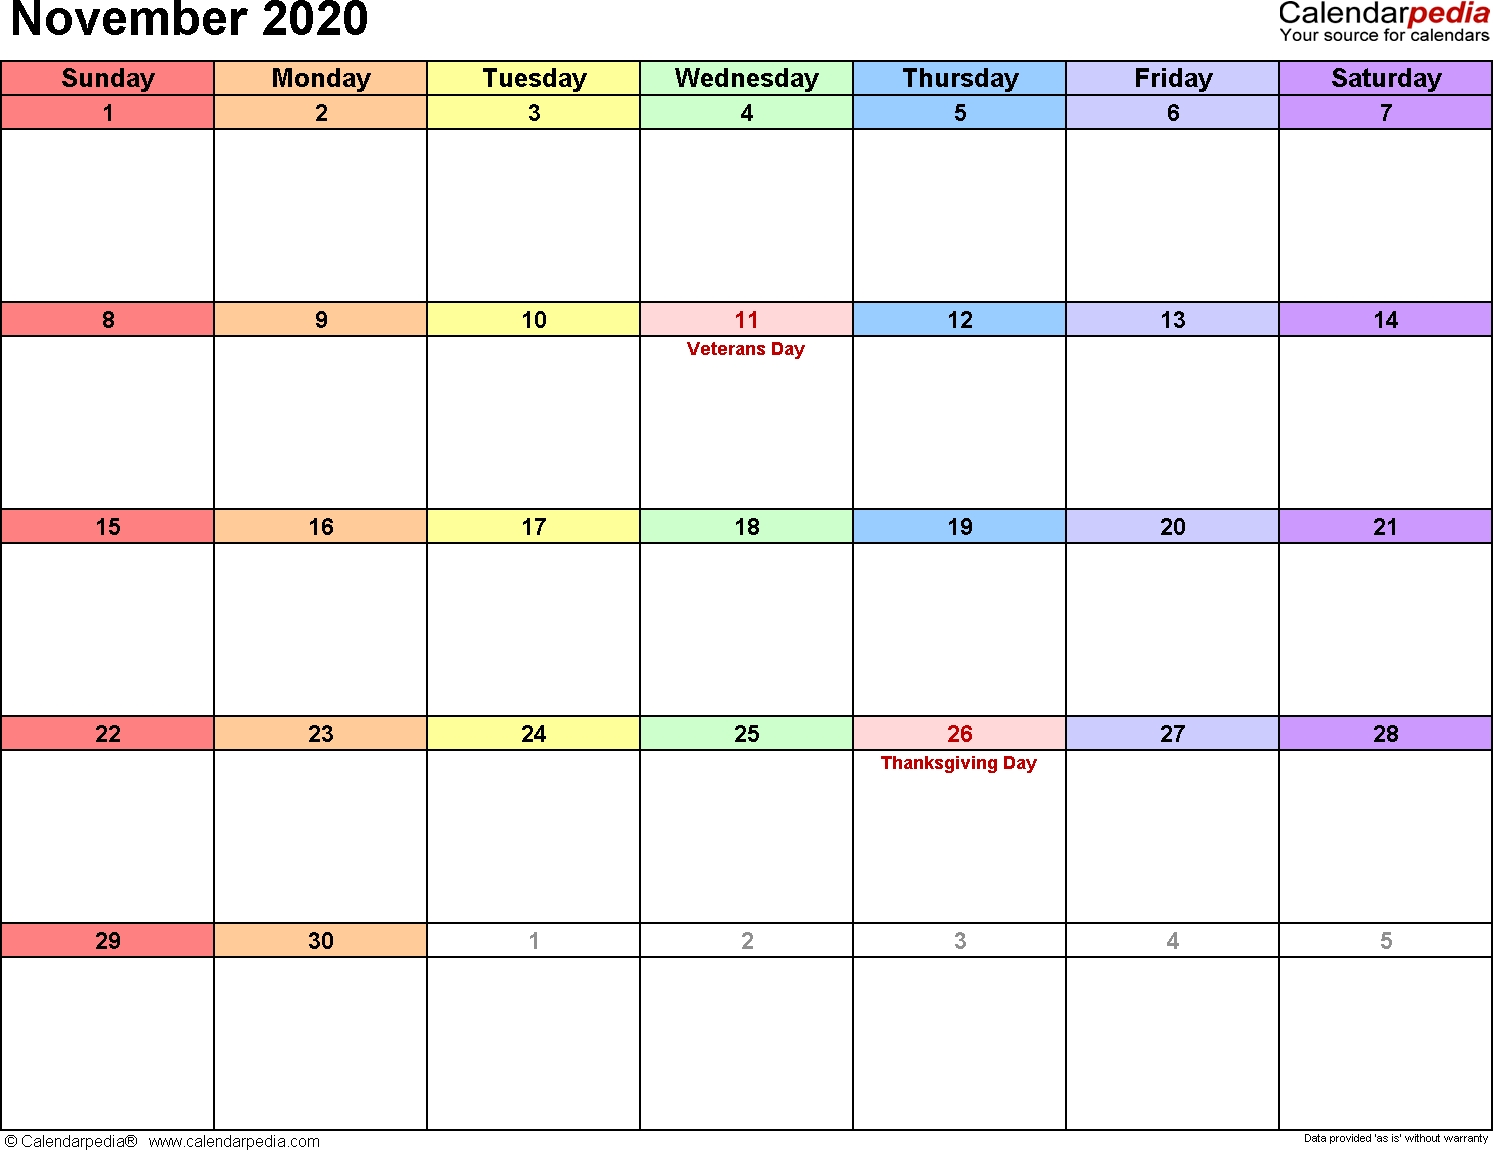 November 2020 Calendars For Word, Excel & Pdf